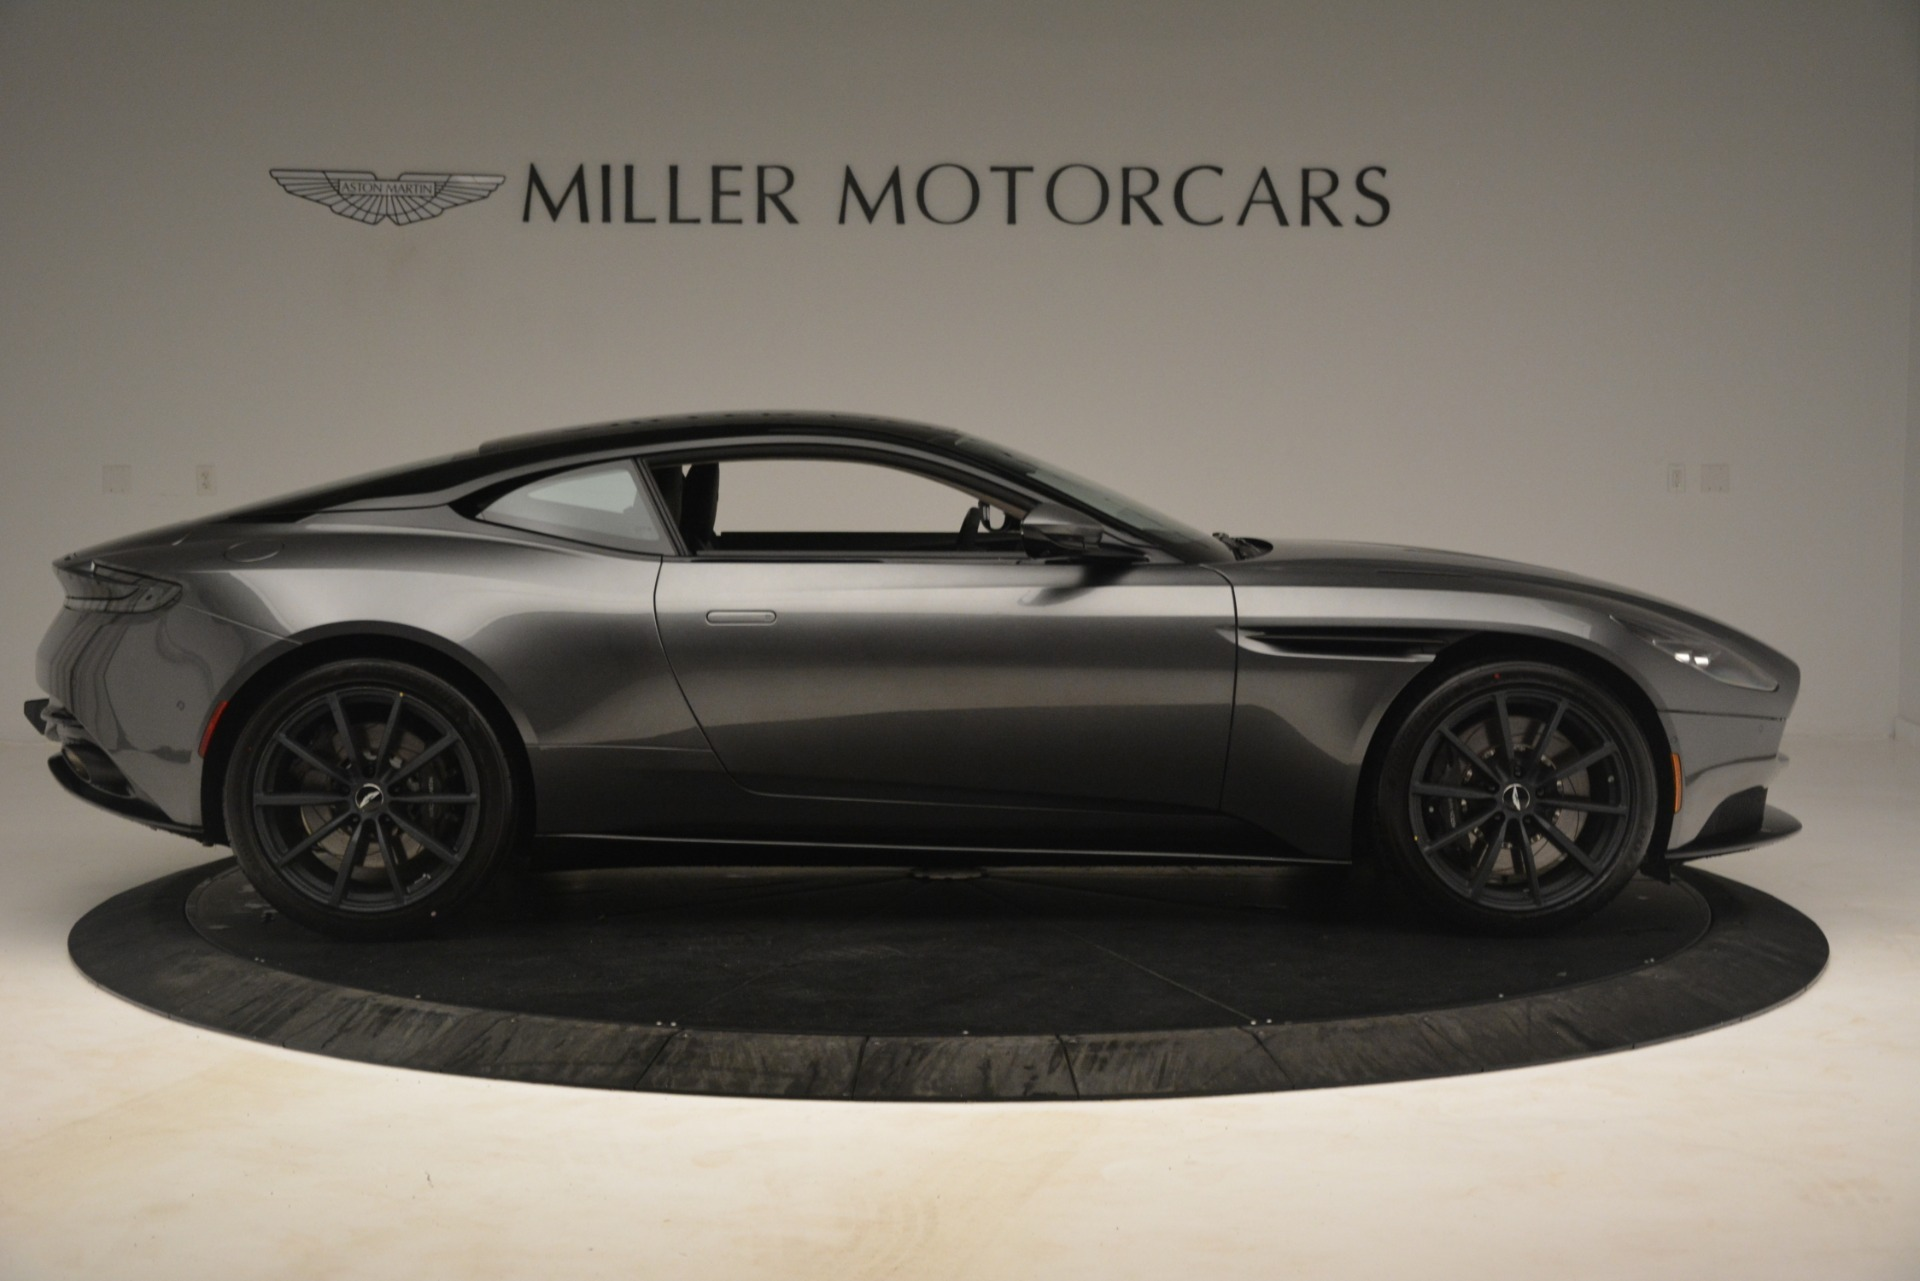 New 2019 Aston Martin DB11 V12 AMR Coupe For Sale In Greenwich, CT 3123_p9